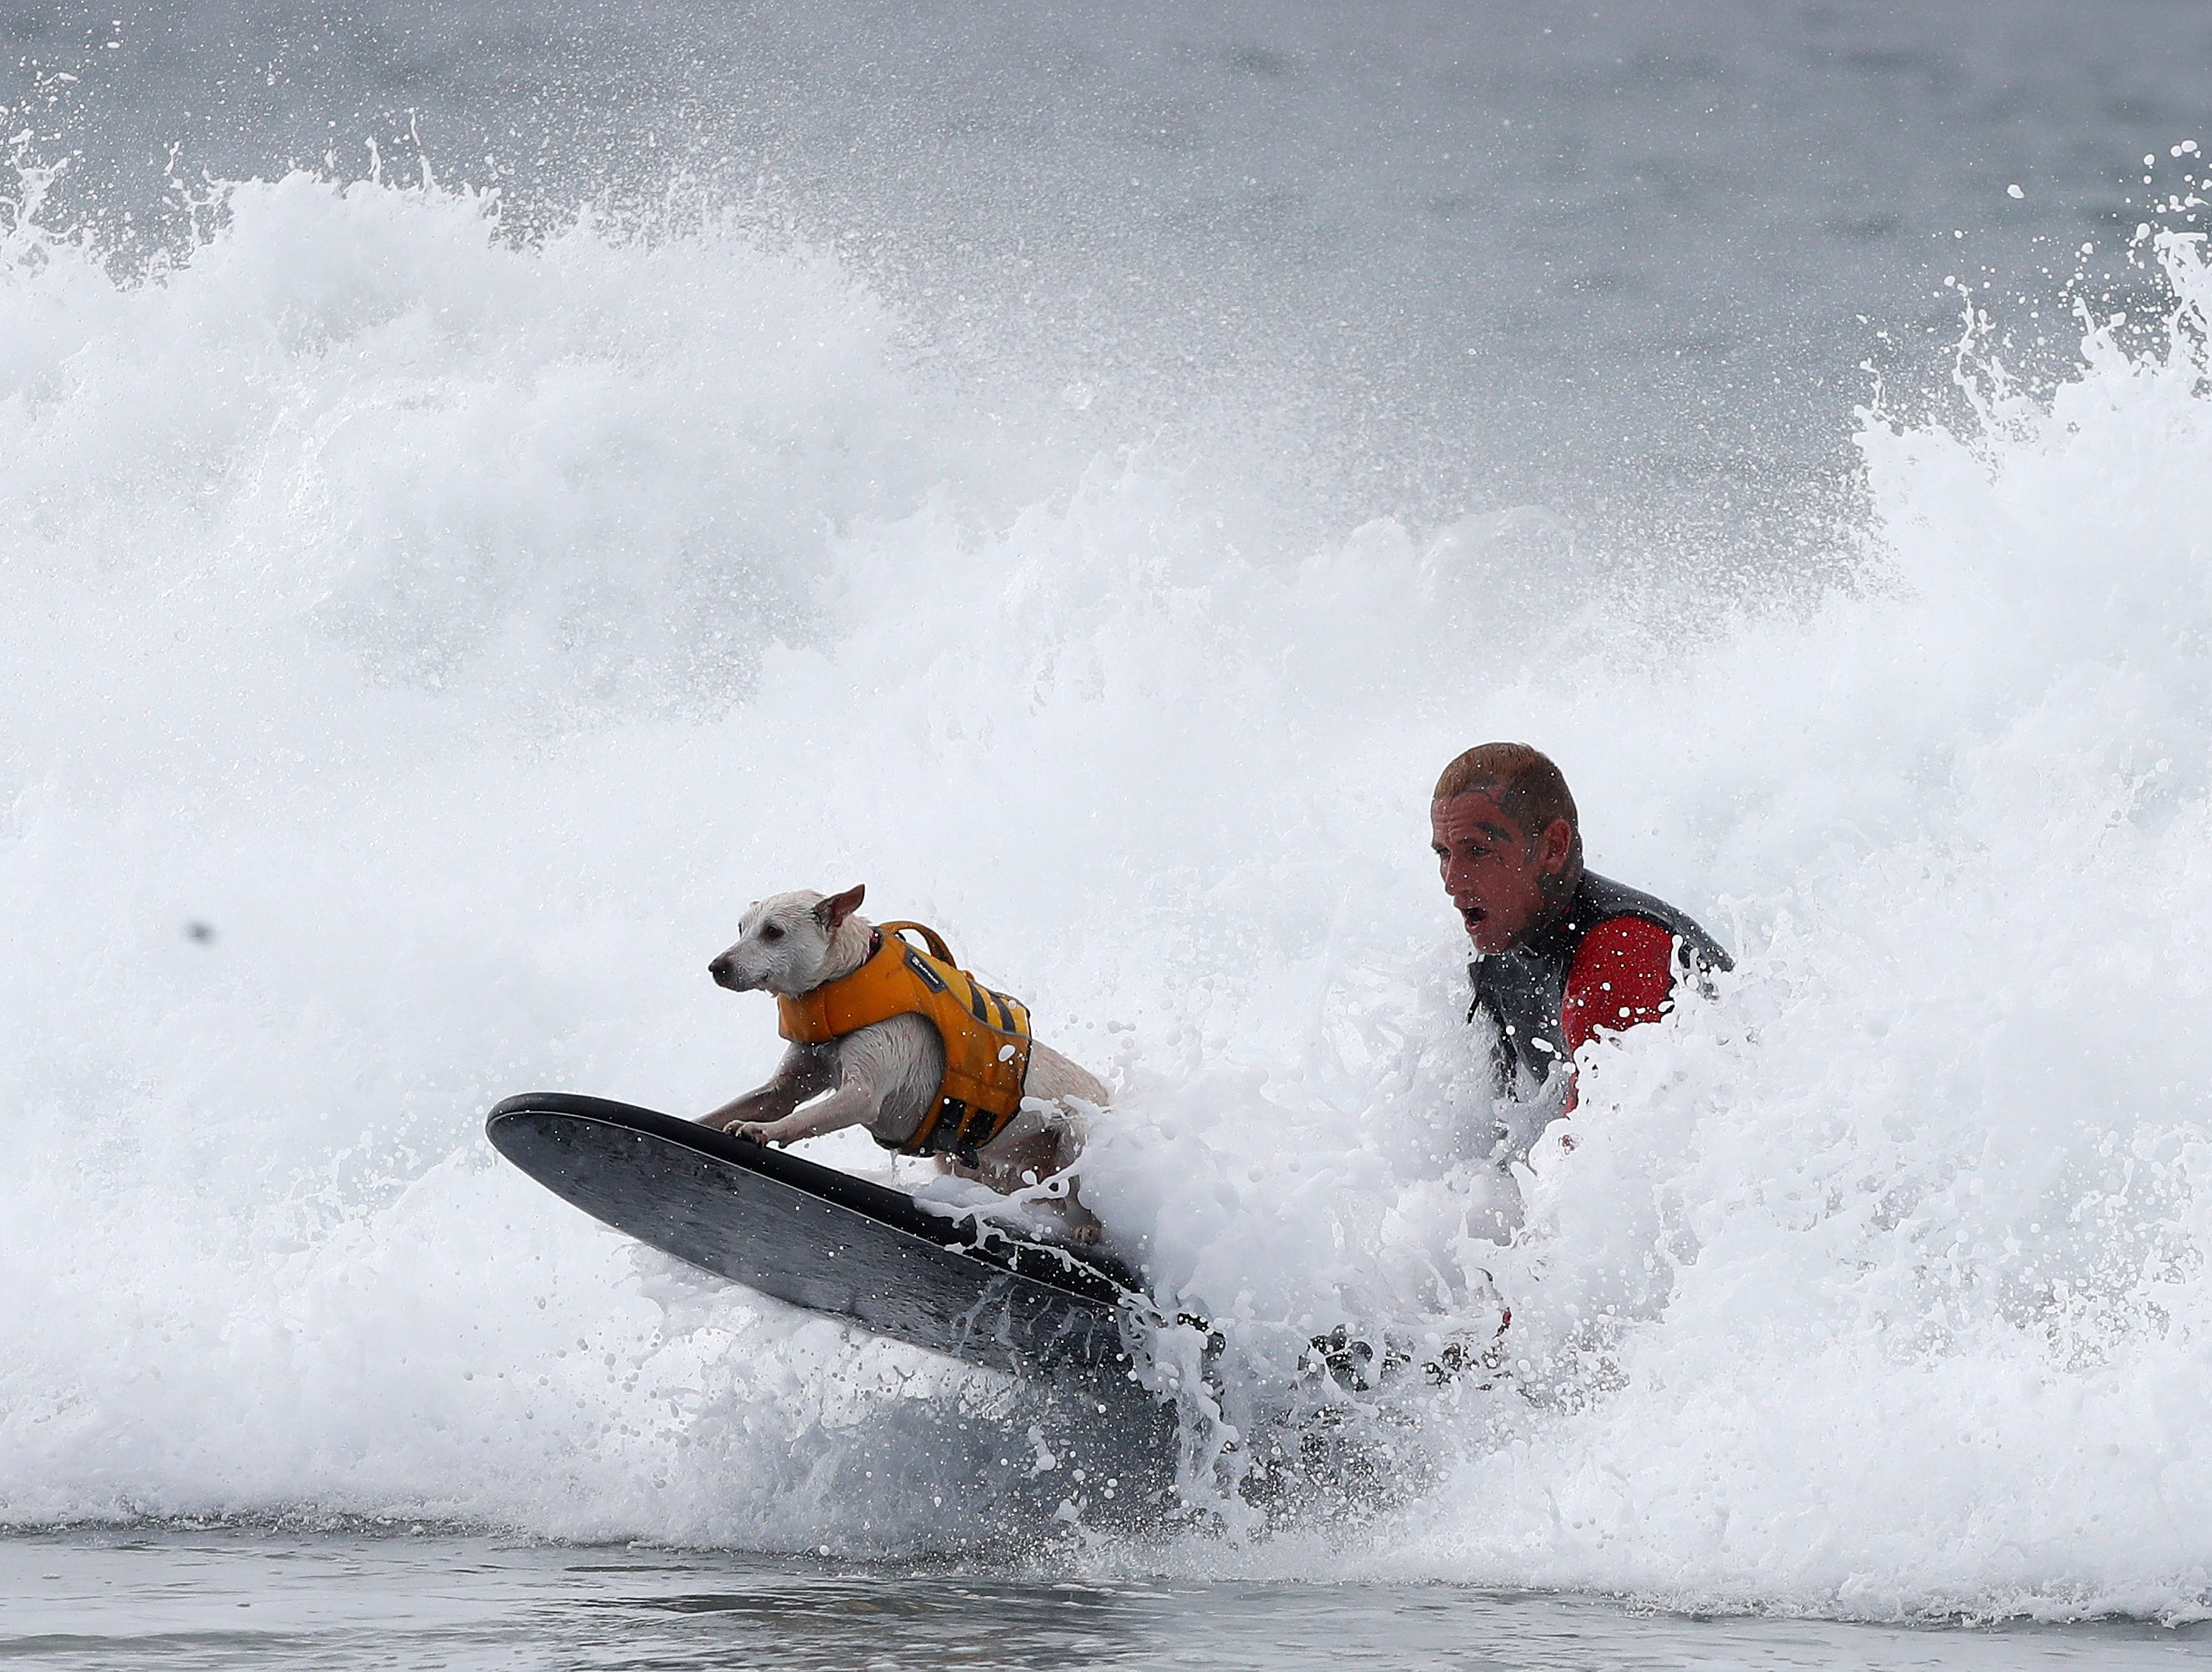 A surfer and his dog ride choppy surf.